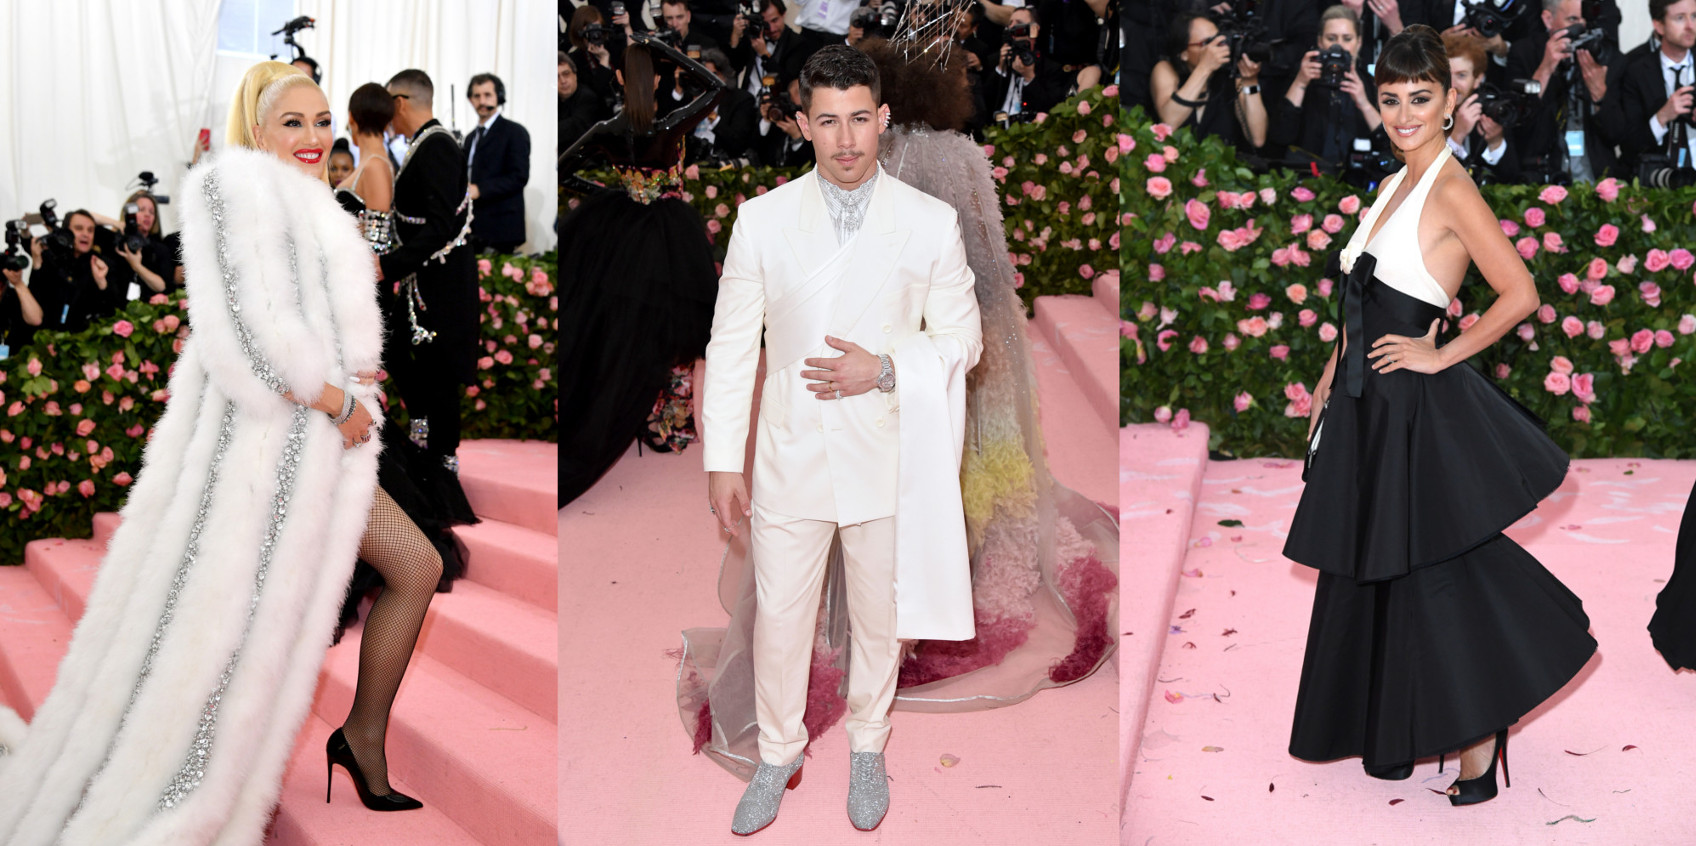 The stars Camp out in Christian Louboutin for the Met Gala 2019